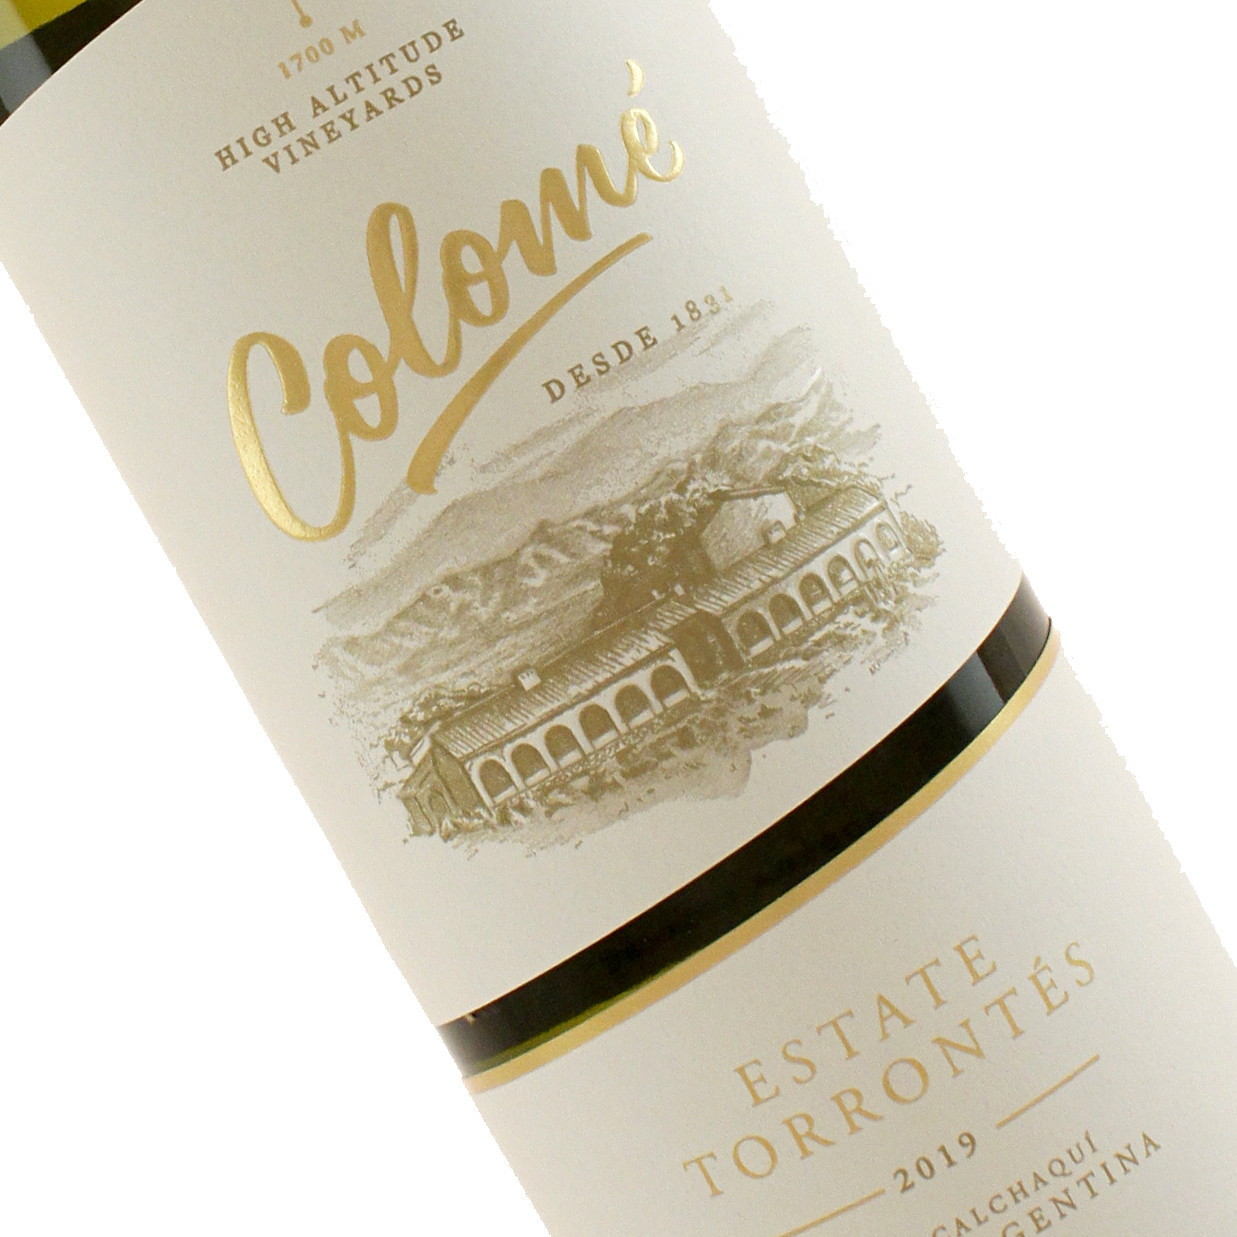 Colome 2019 Calchaqui Valley Torrontes, Argentina